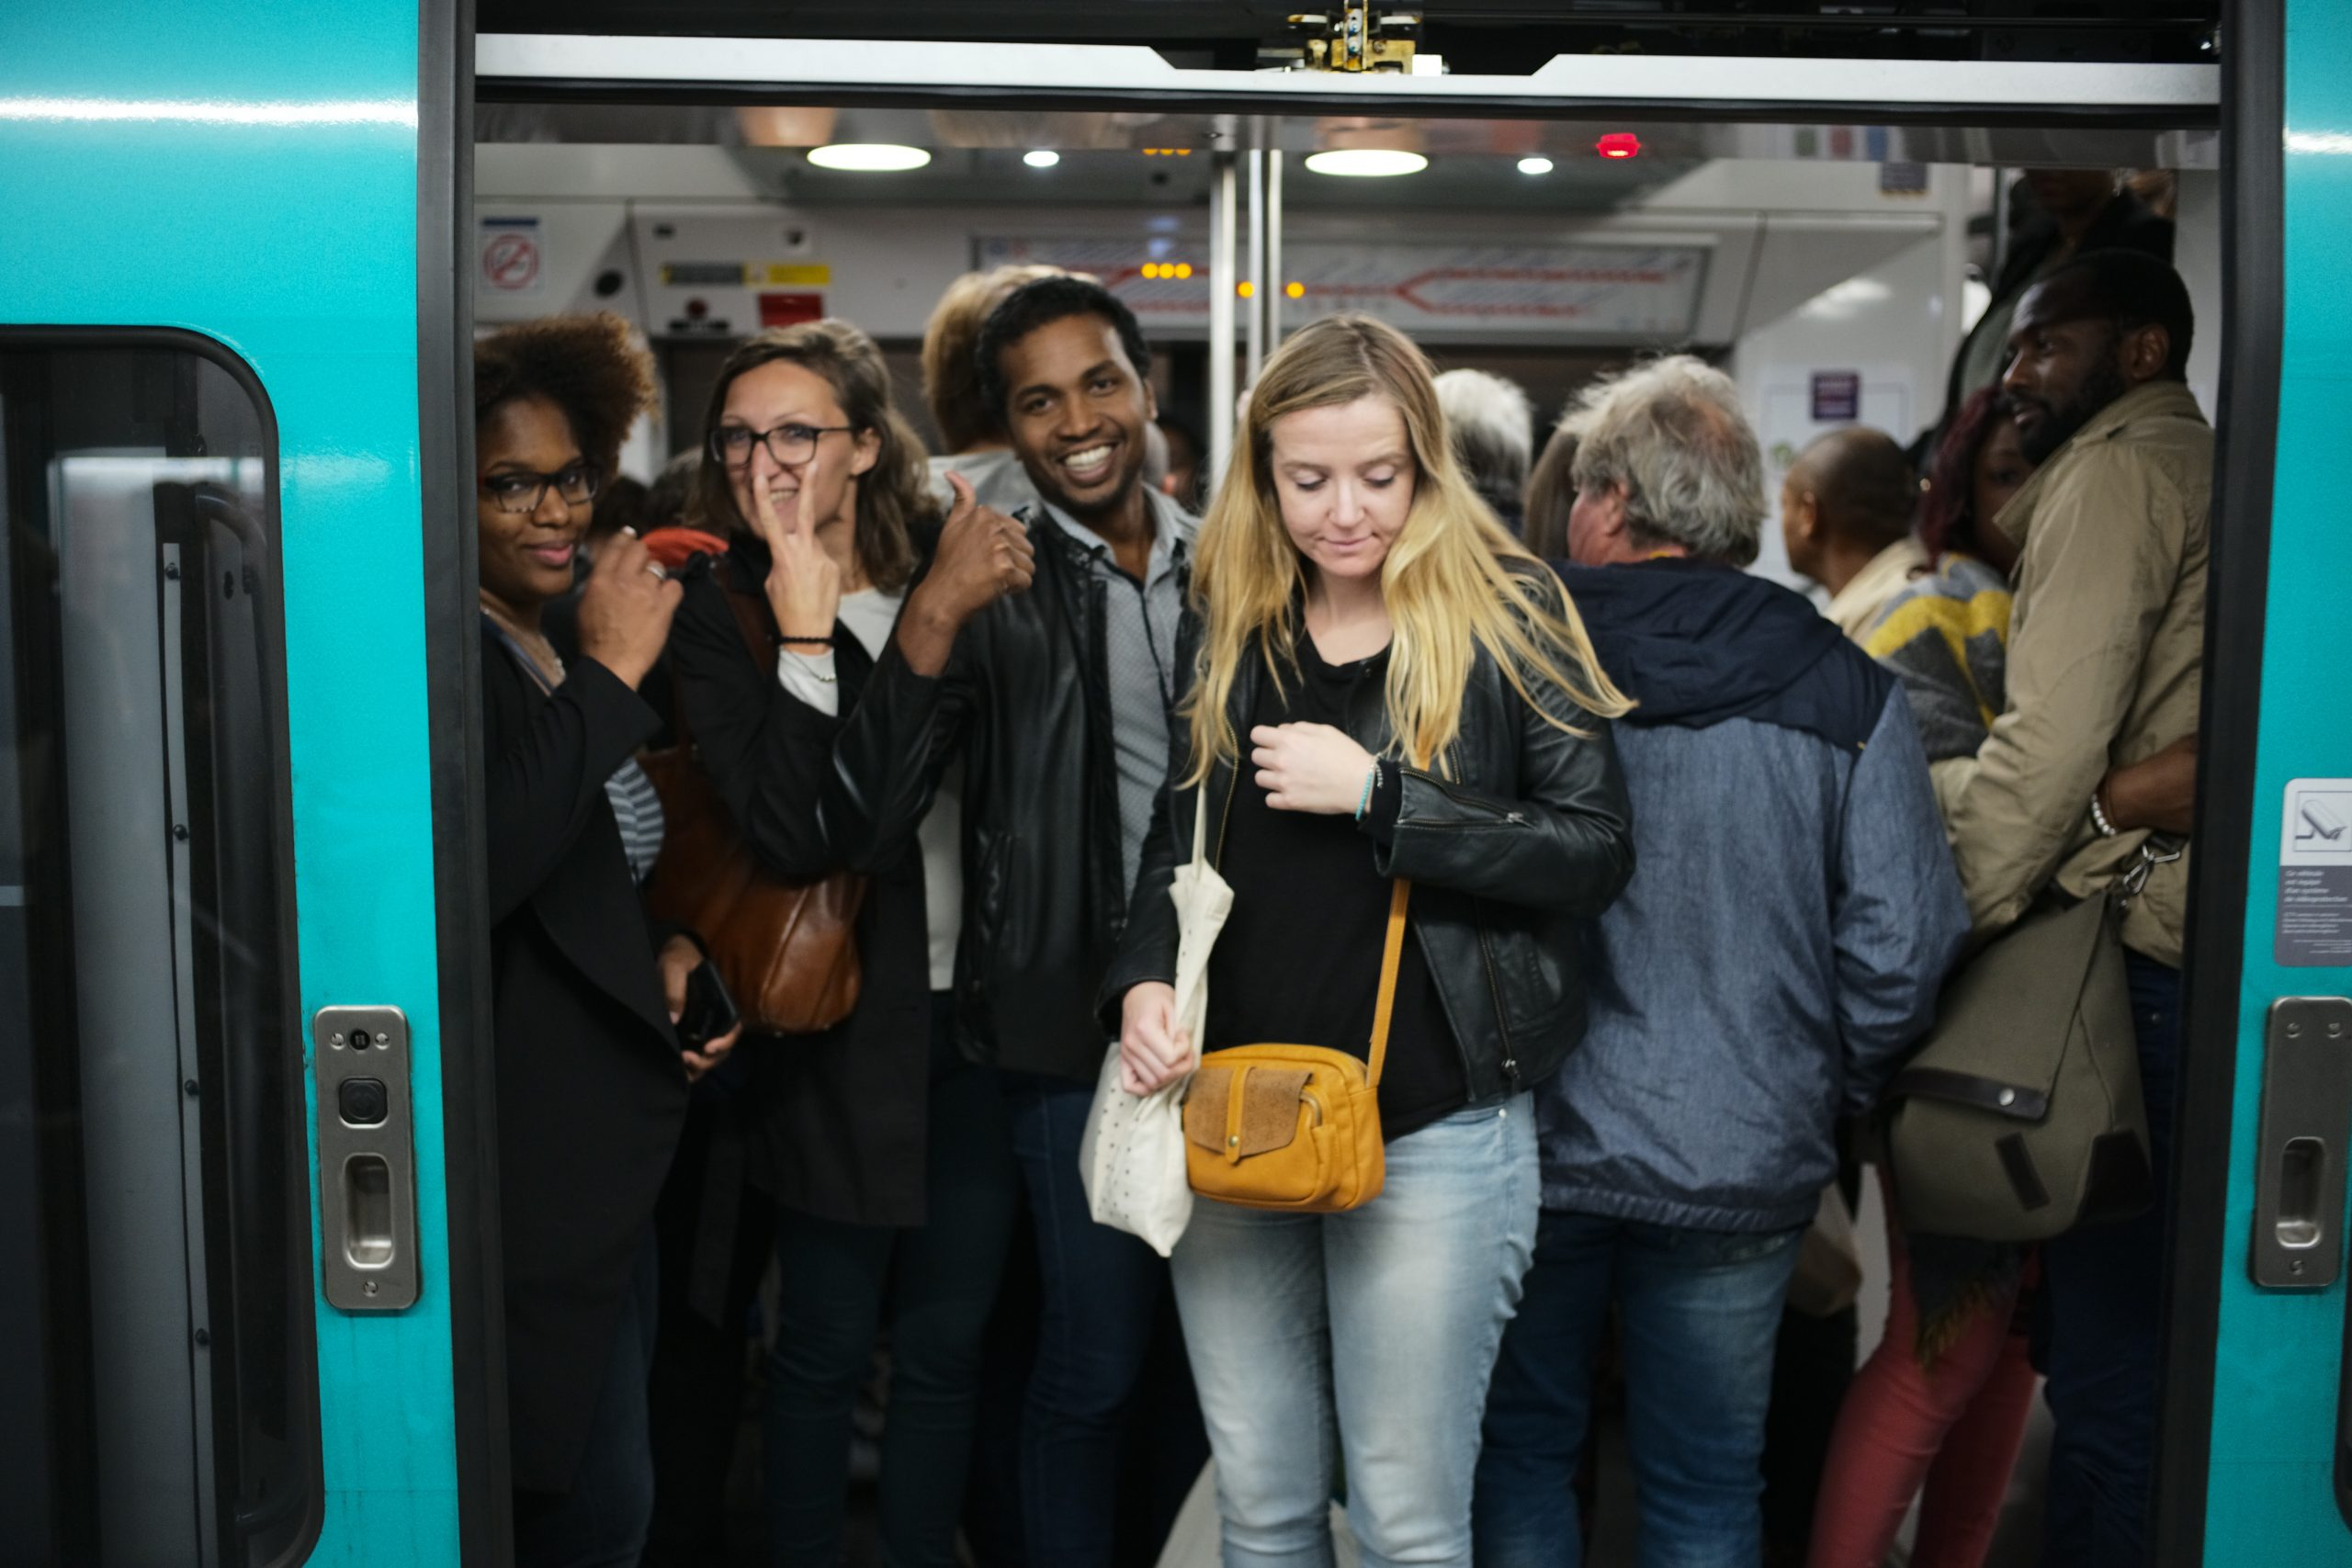 Great gang of happy people on a jam packed RER A train in Paris - Leica M10